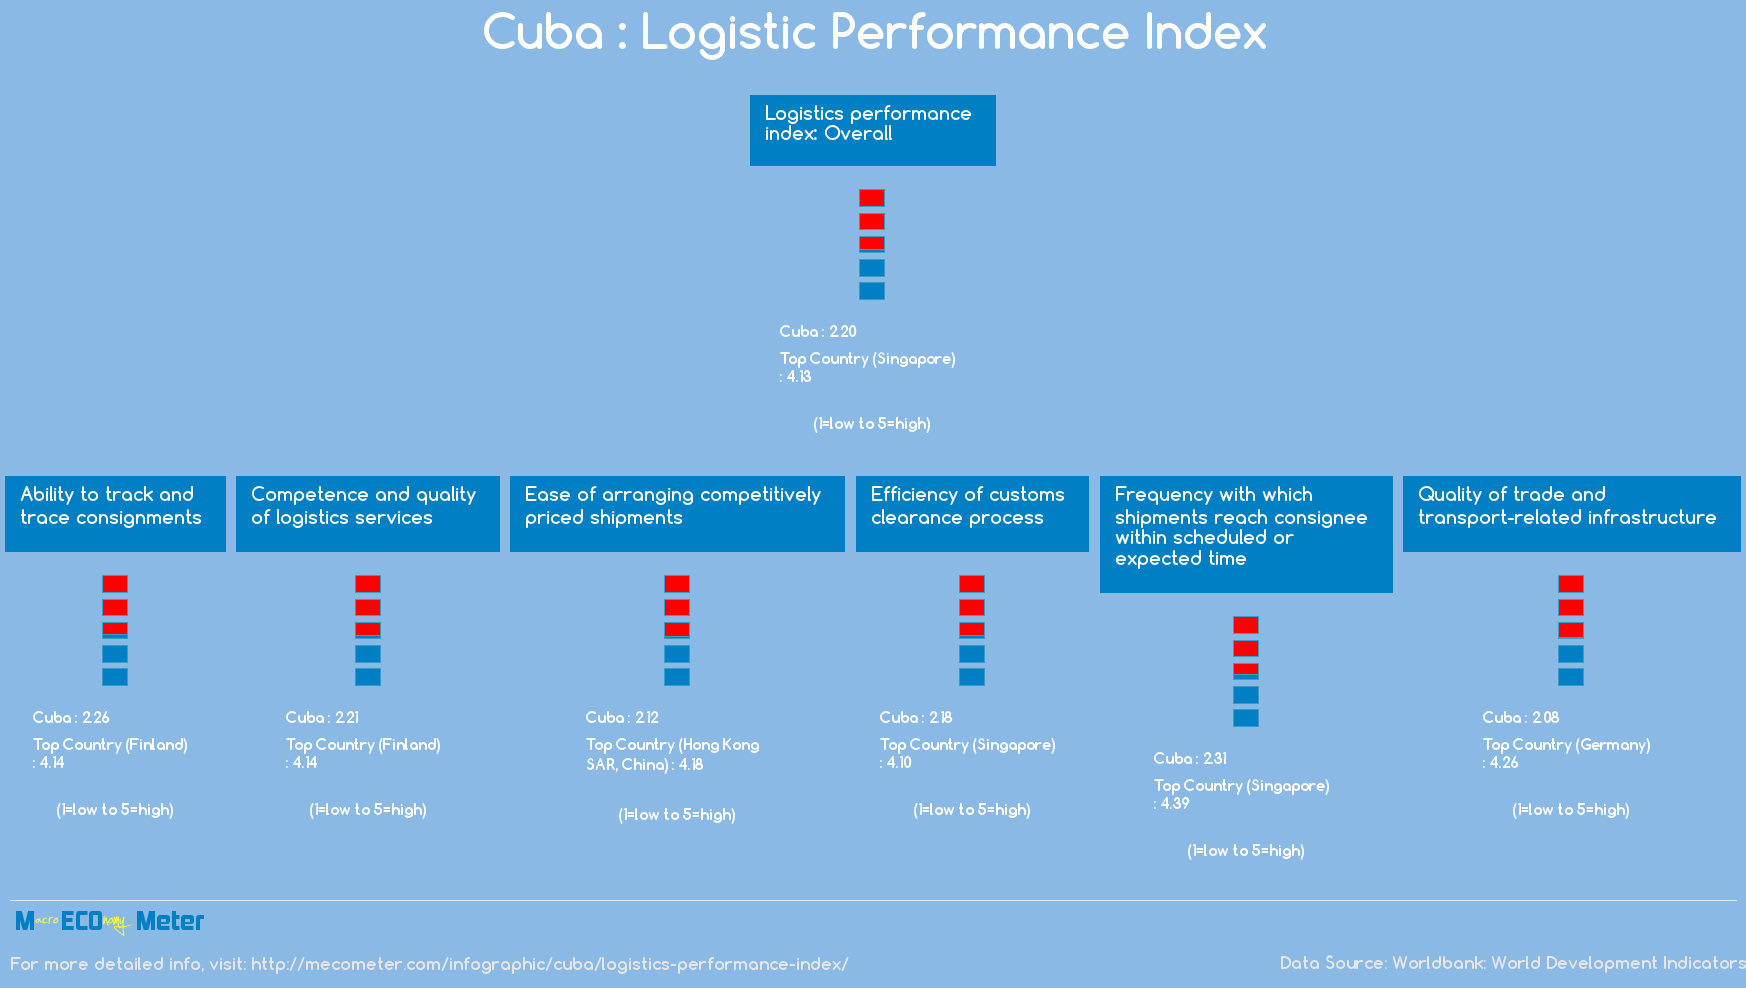 Cuba : Logistic Performance Index